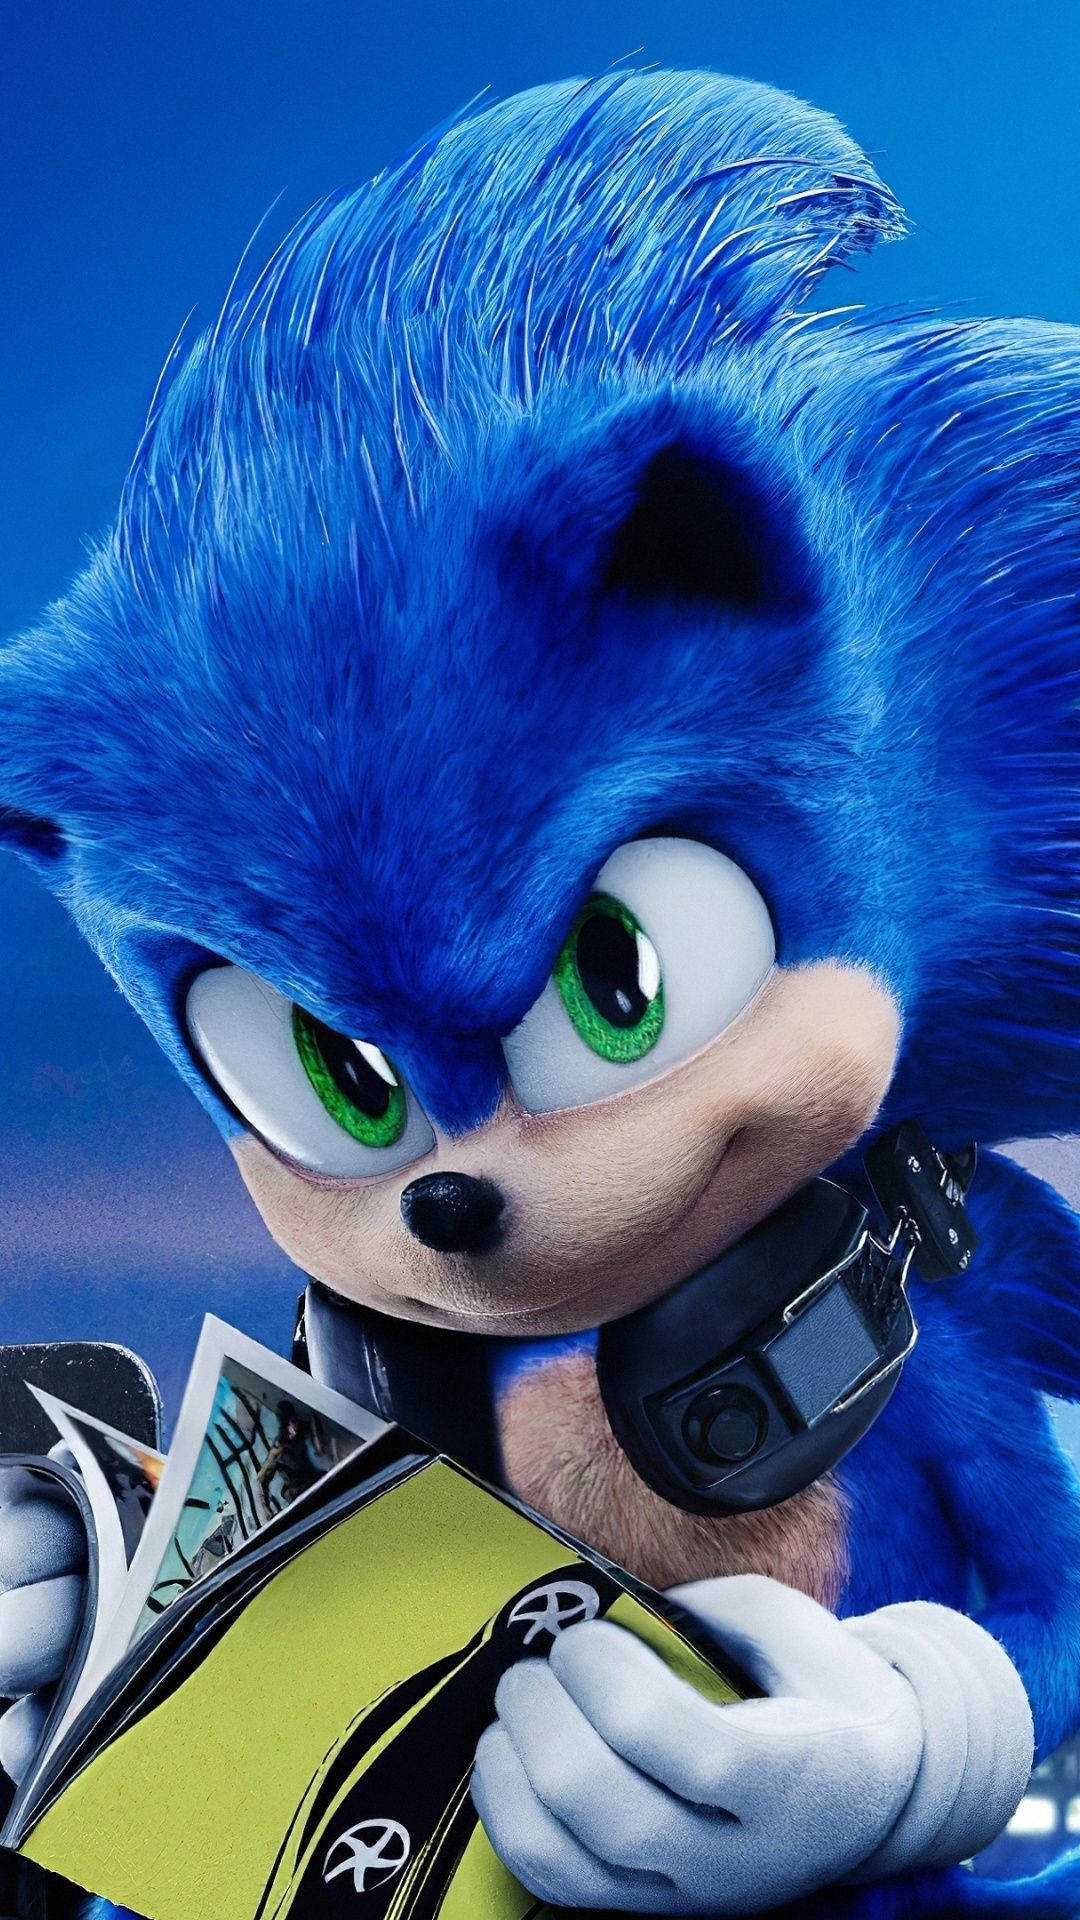 1080x1920 Sonic The Hedgehog 2020 Movie Wallpaper Movie Wallpapers Hedgehog Movie Hedgehog Art